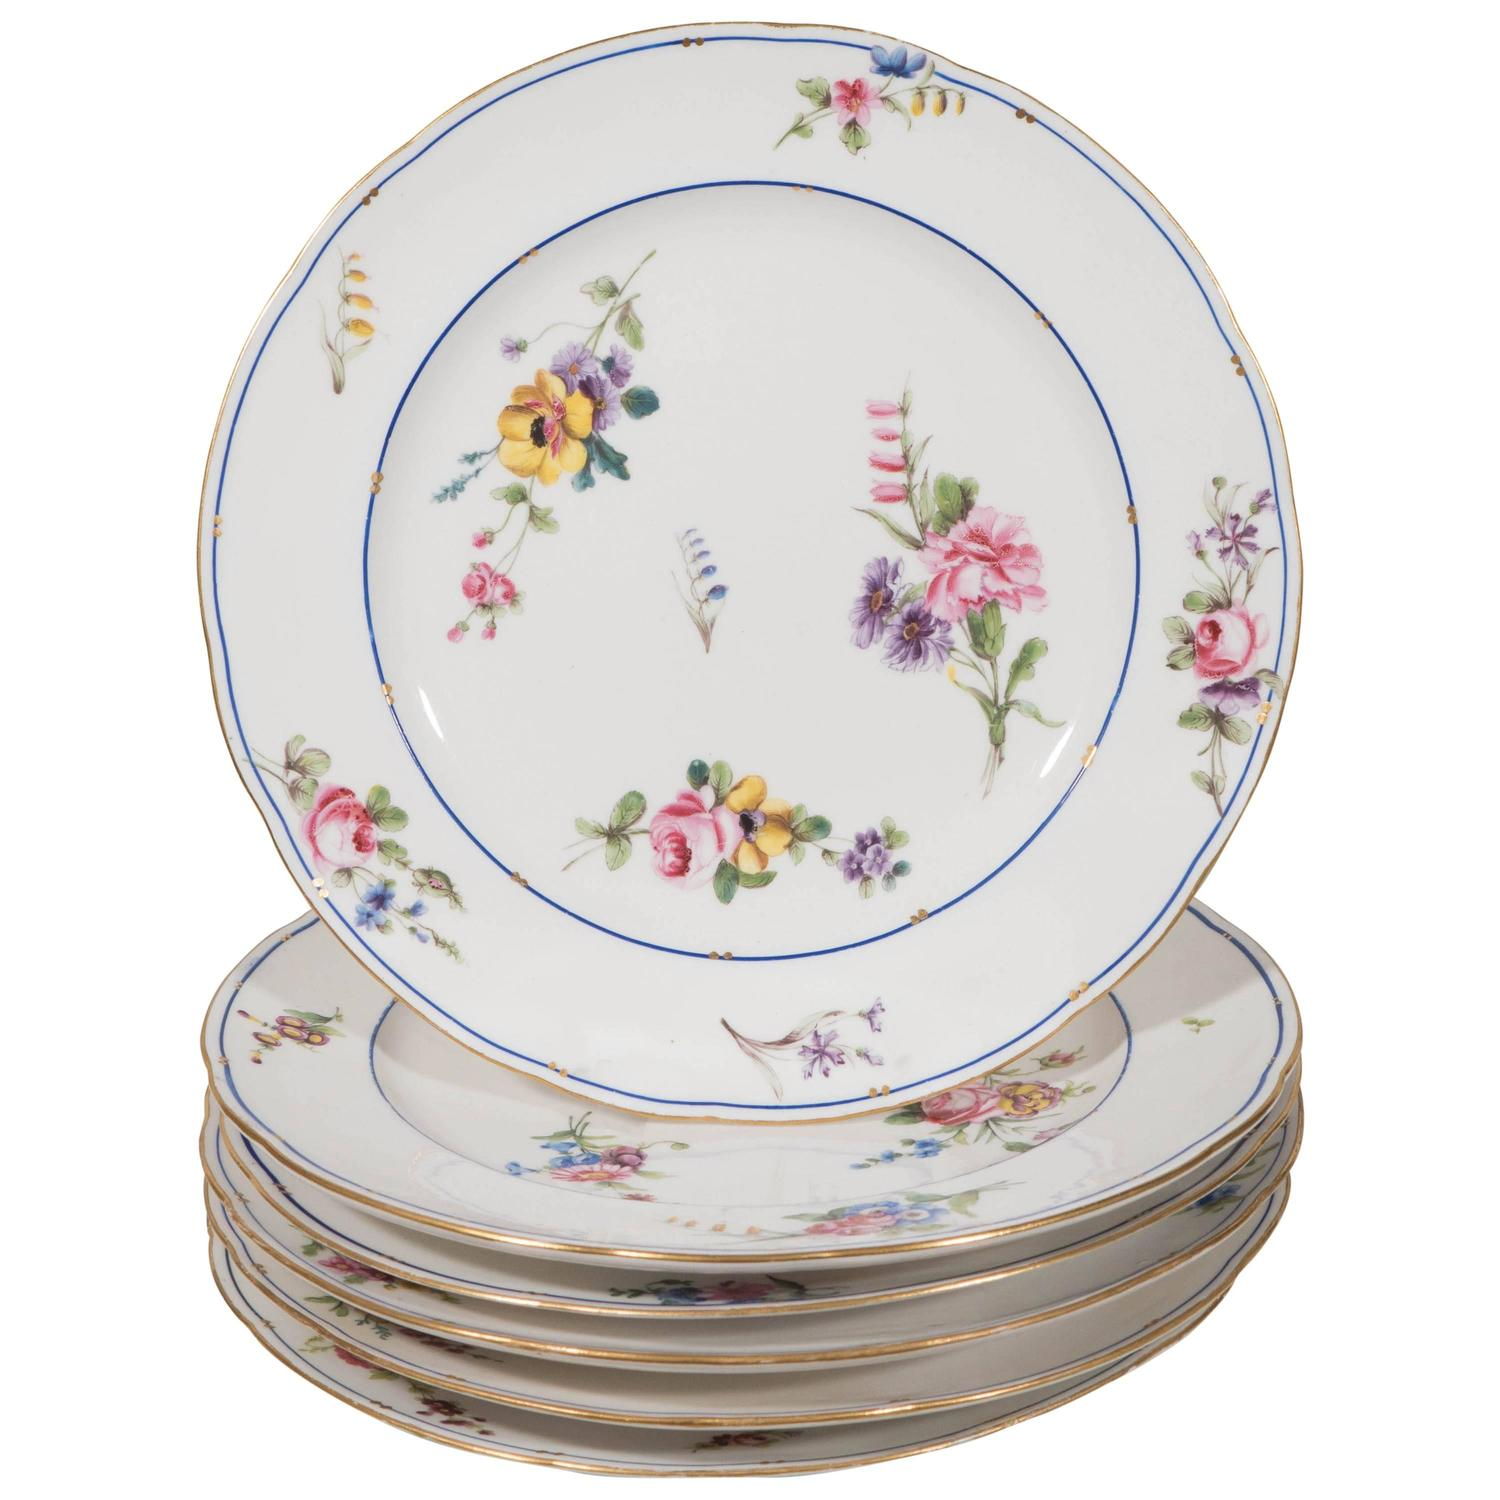 Antique Italian Porcelain Dishes from the 18th Century For Sale at 1stdibs  sc 1 st  1stDibs & Antique Italian Porcelain Dishes from the 18th Century For Sale at ...